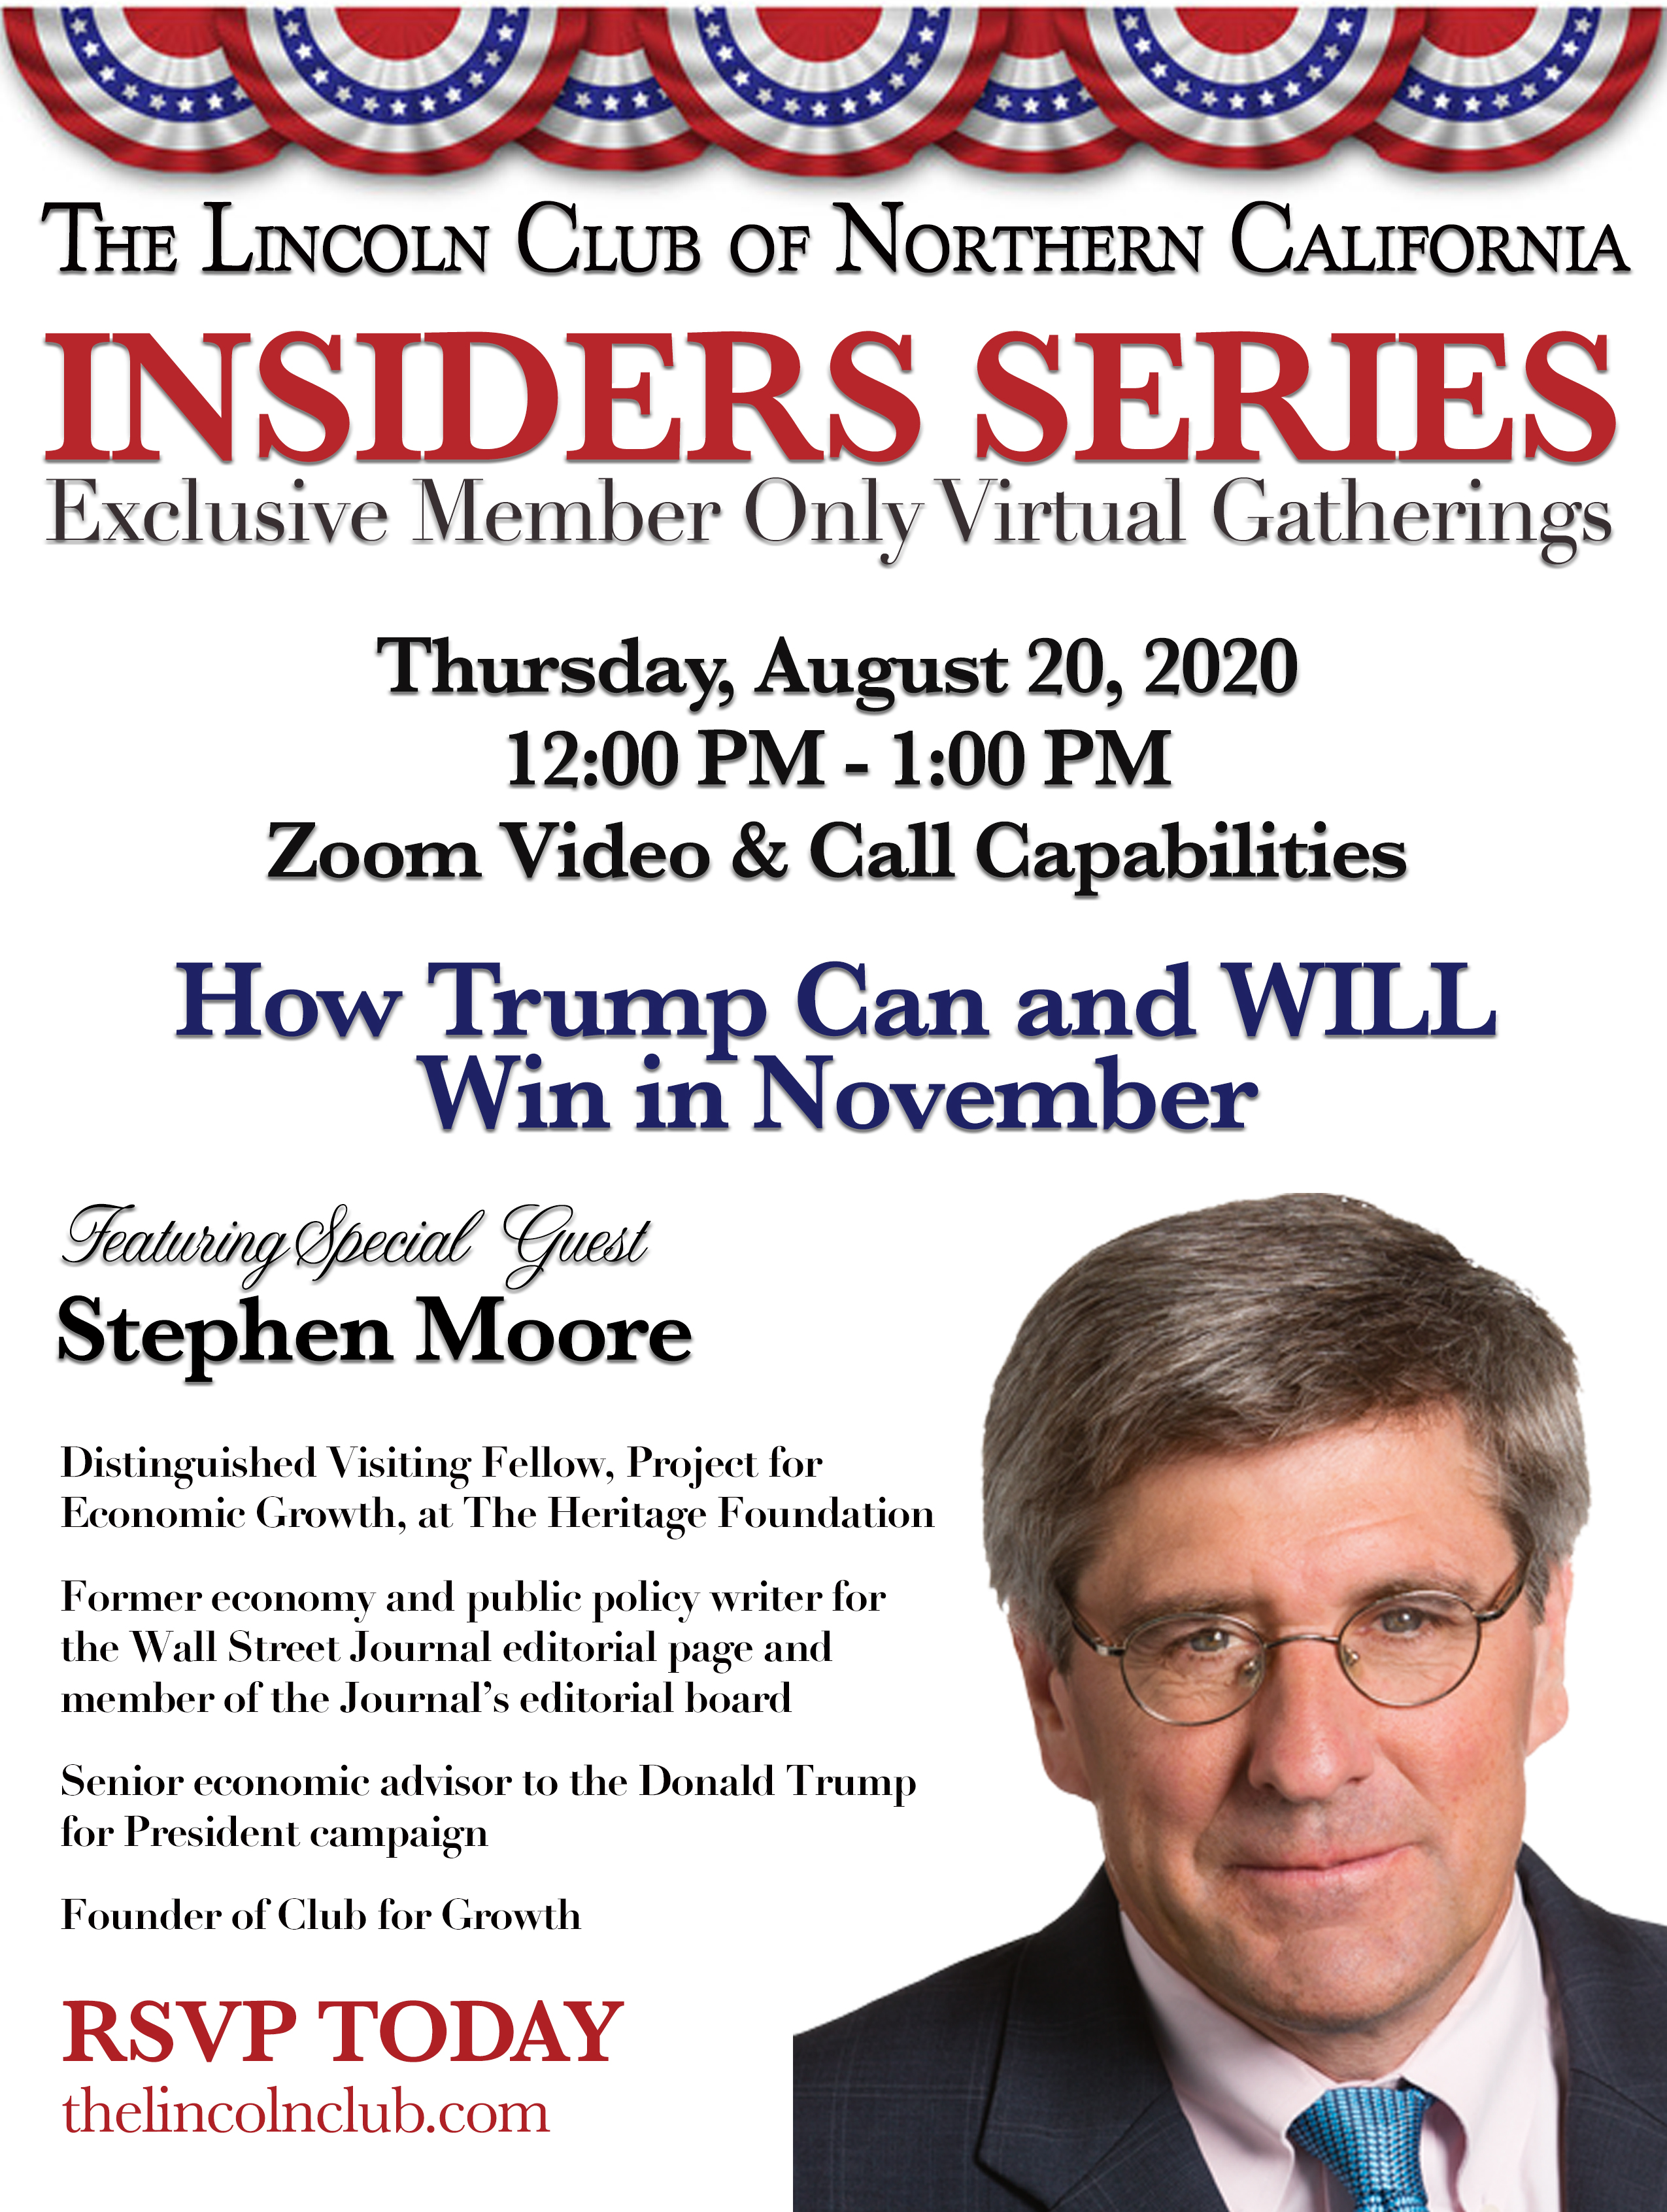 Insiders Series with Stephen Moore Invite